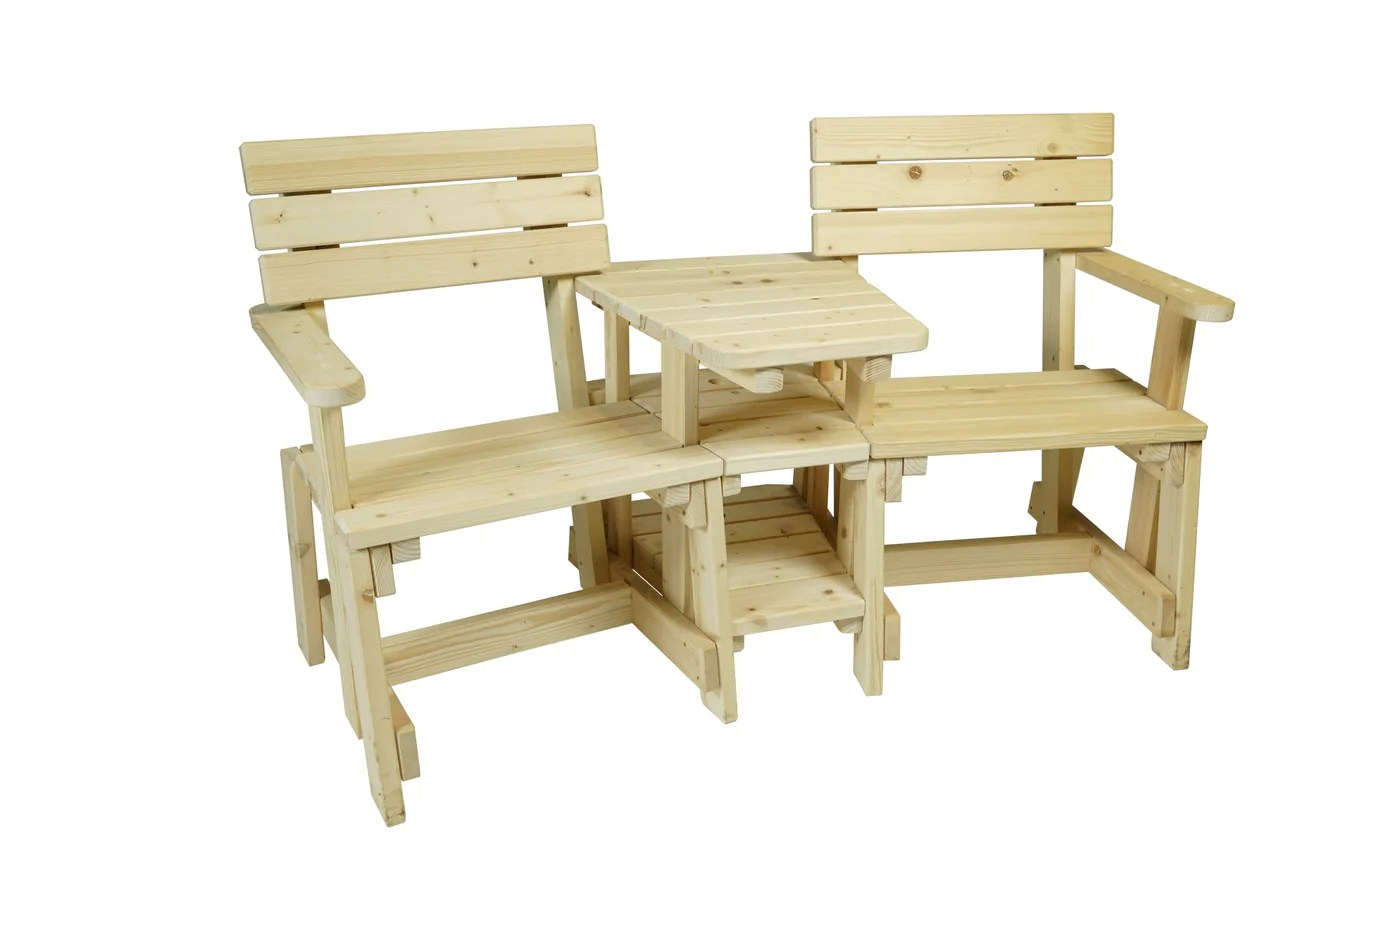 Love Seat Wood Shop The Home Of Upcycled Handmade Wood Products